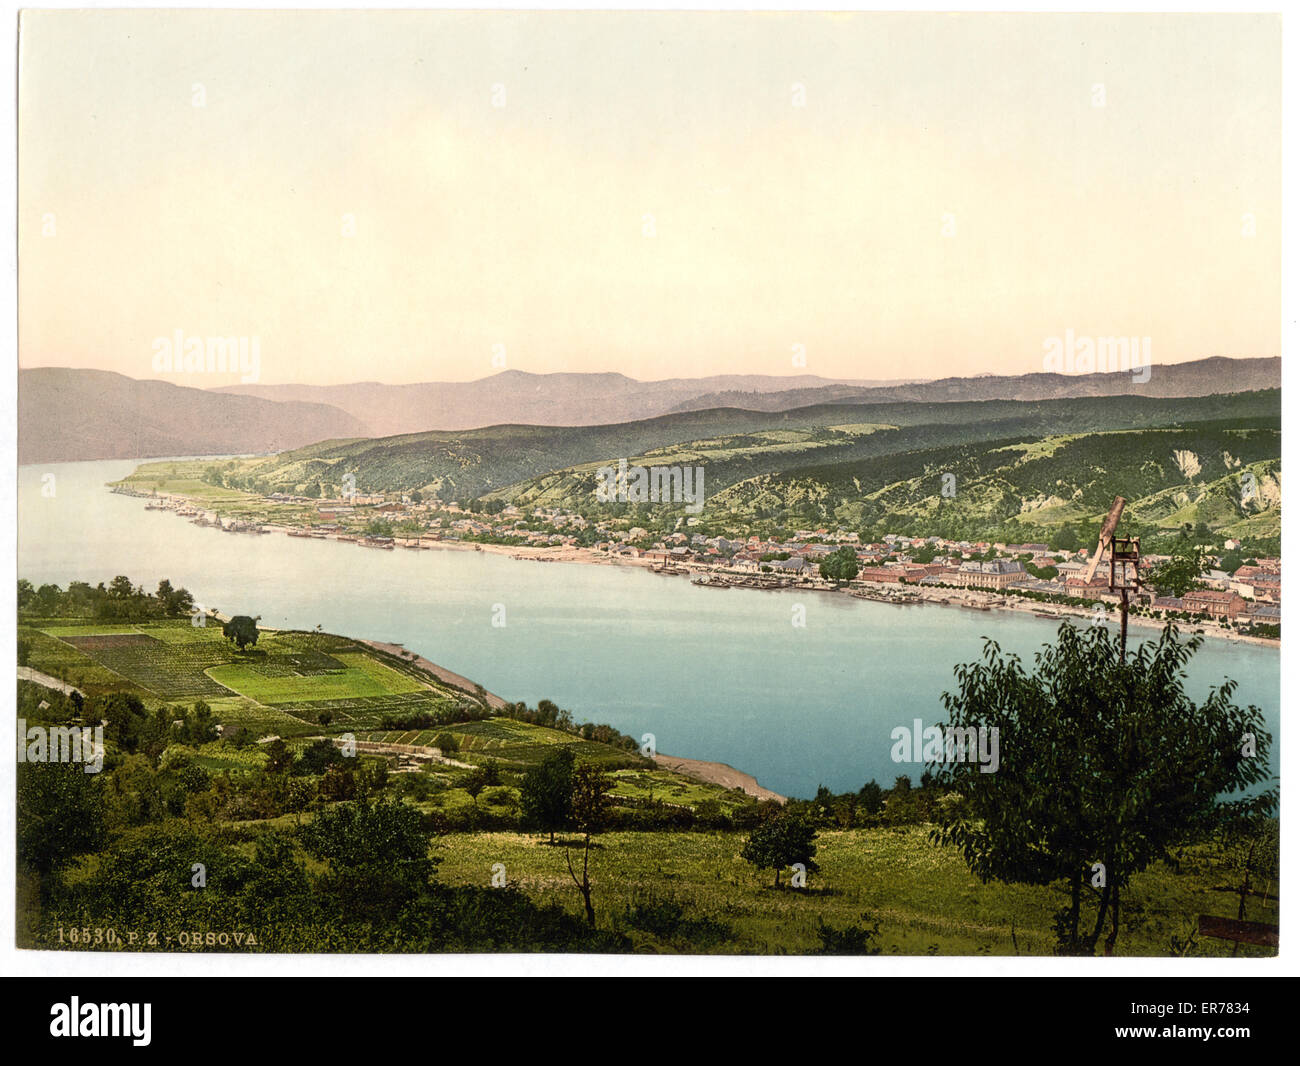 Orsova, Austro-Hungary. Date between ca. 1890 and ca. 1900. - Stock Image